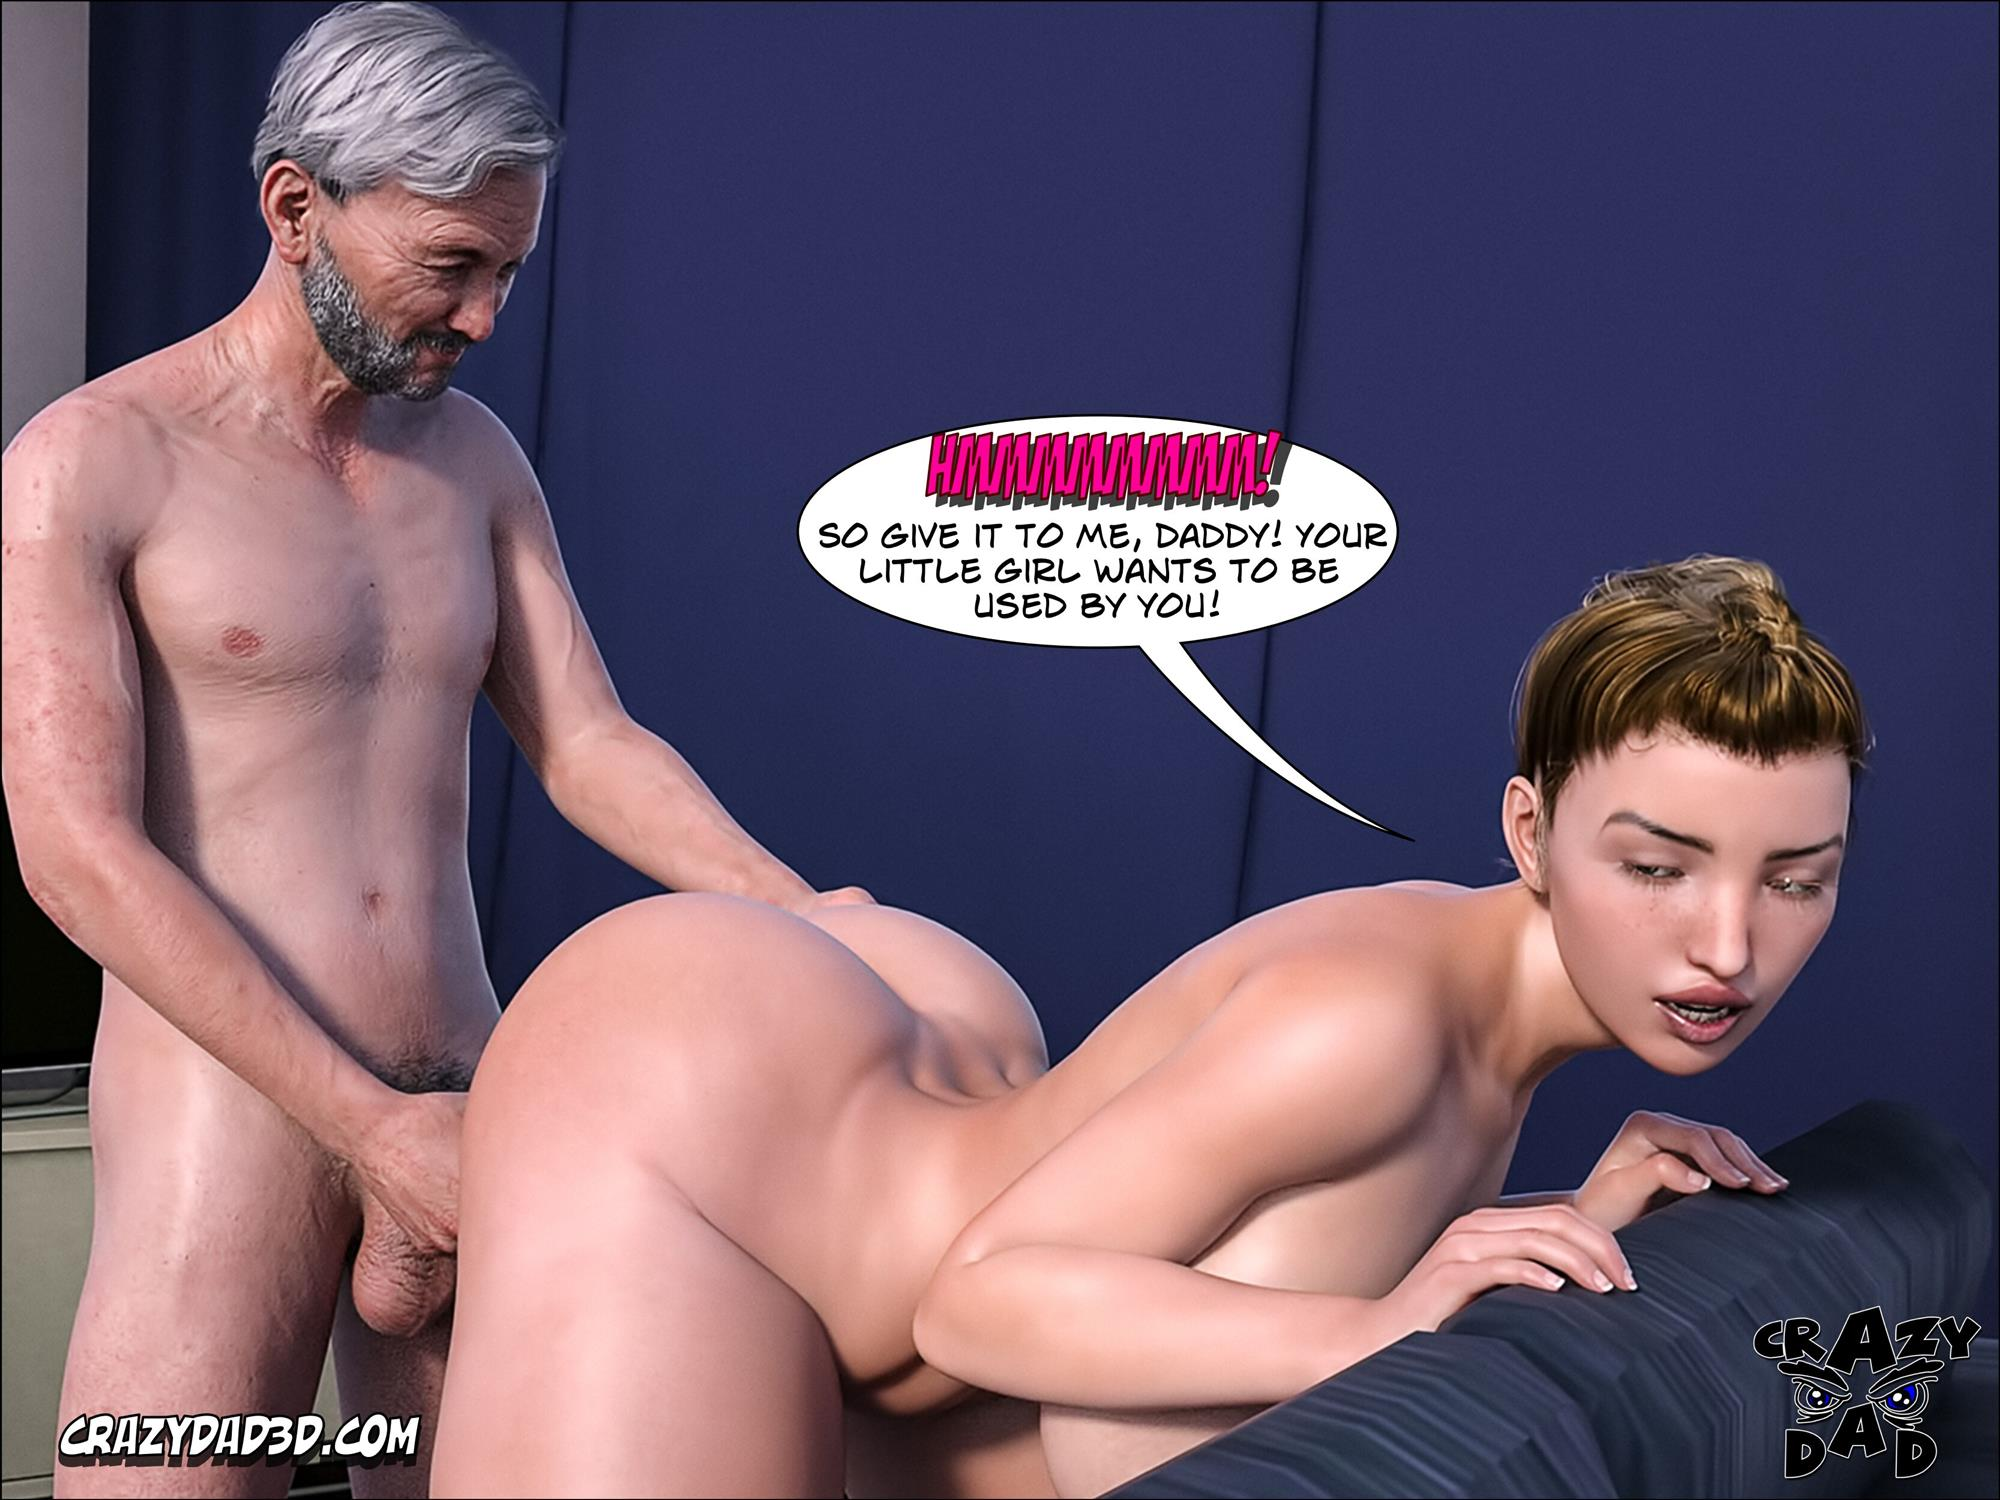 Father-in-Law at Home 10 [Crazy Dad 3D] - Foto 6